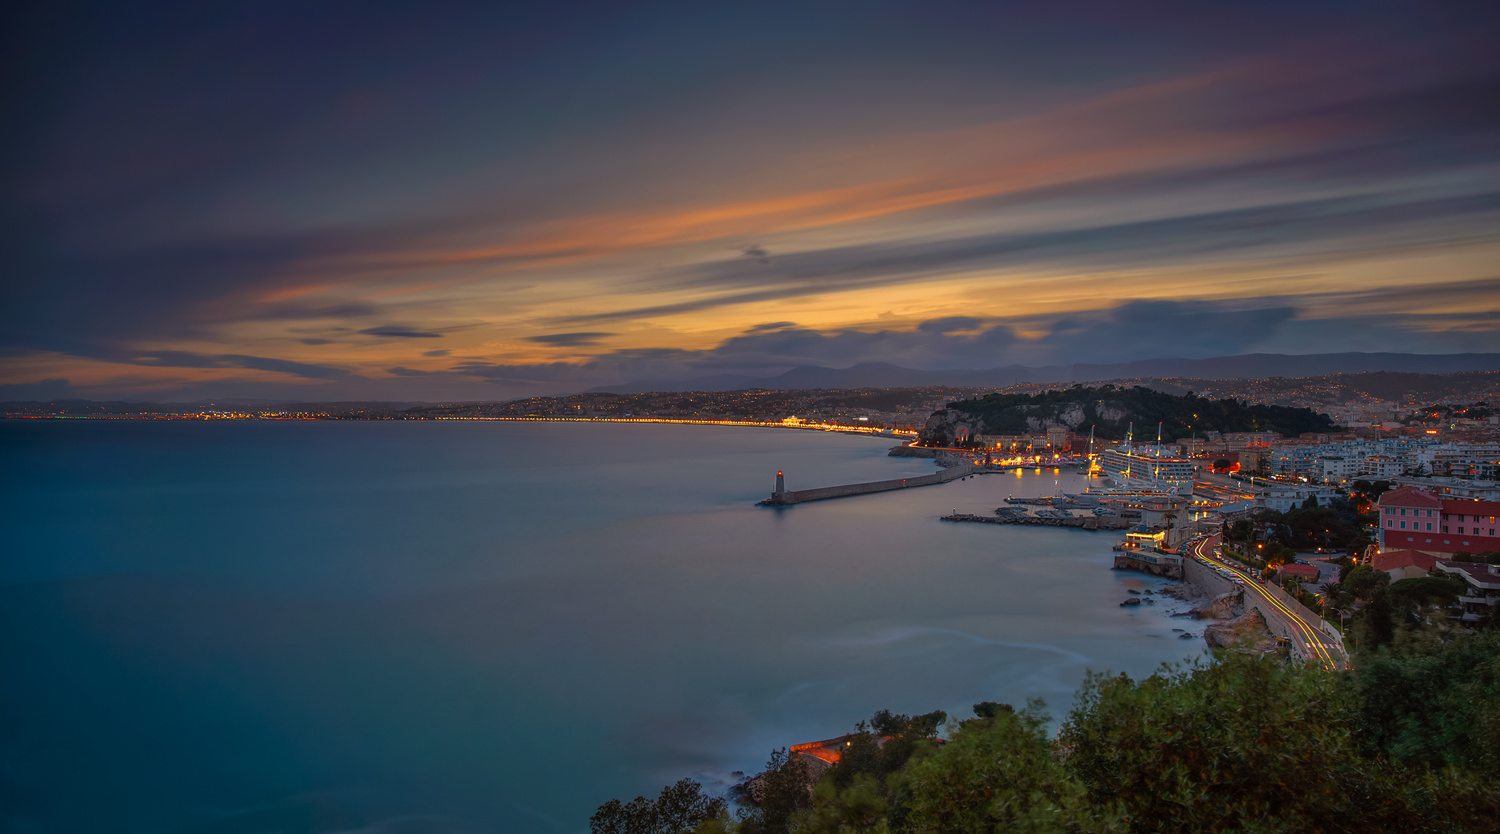 Nice - Long exposure during sunset by Alex Lud